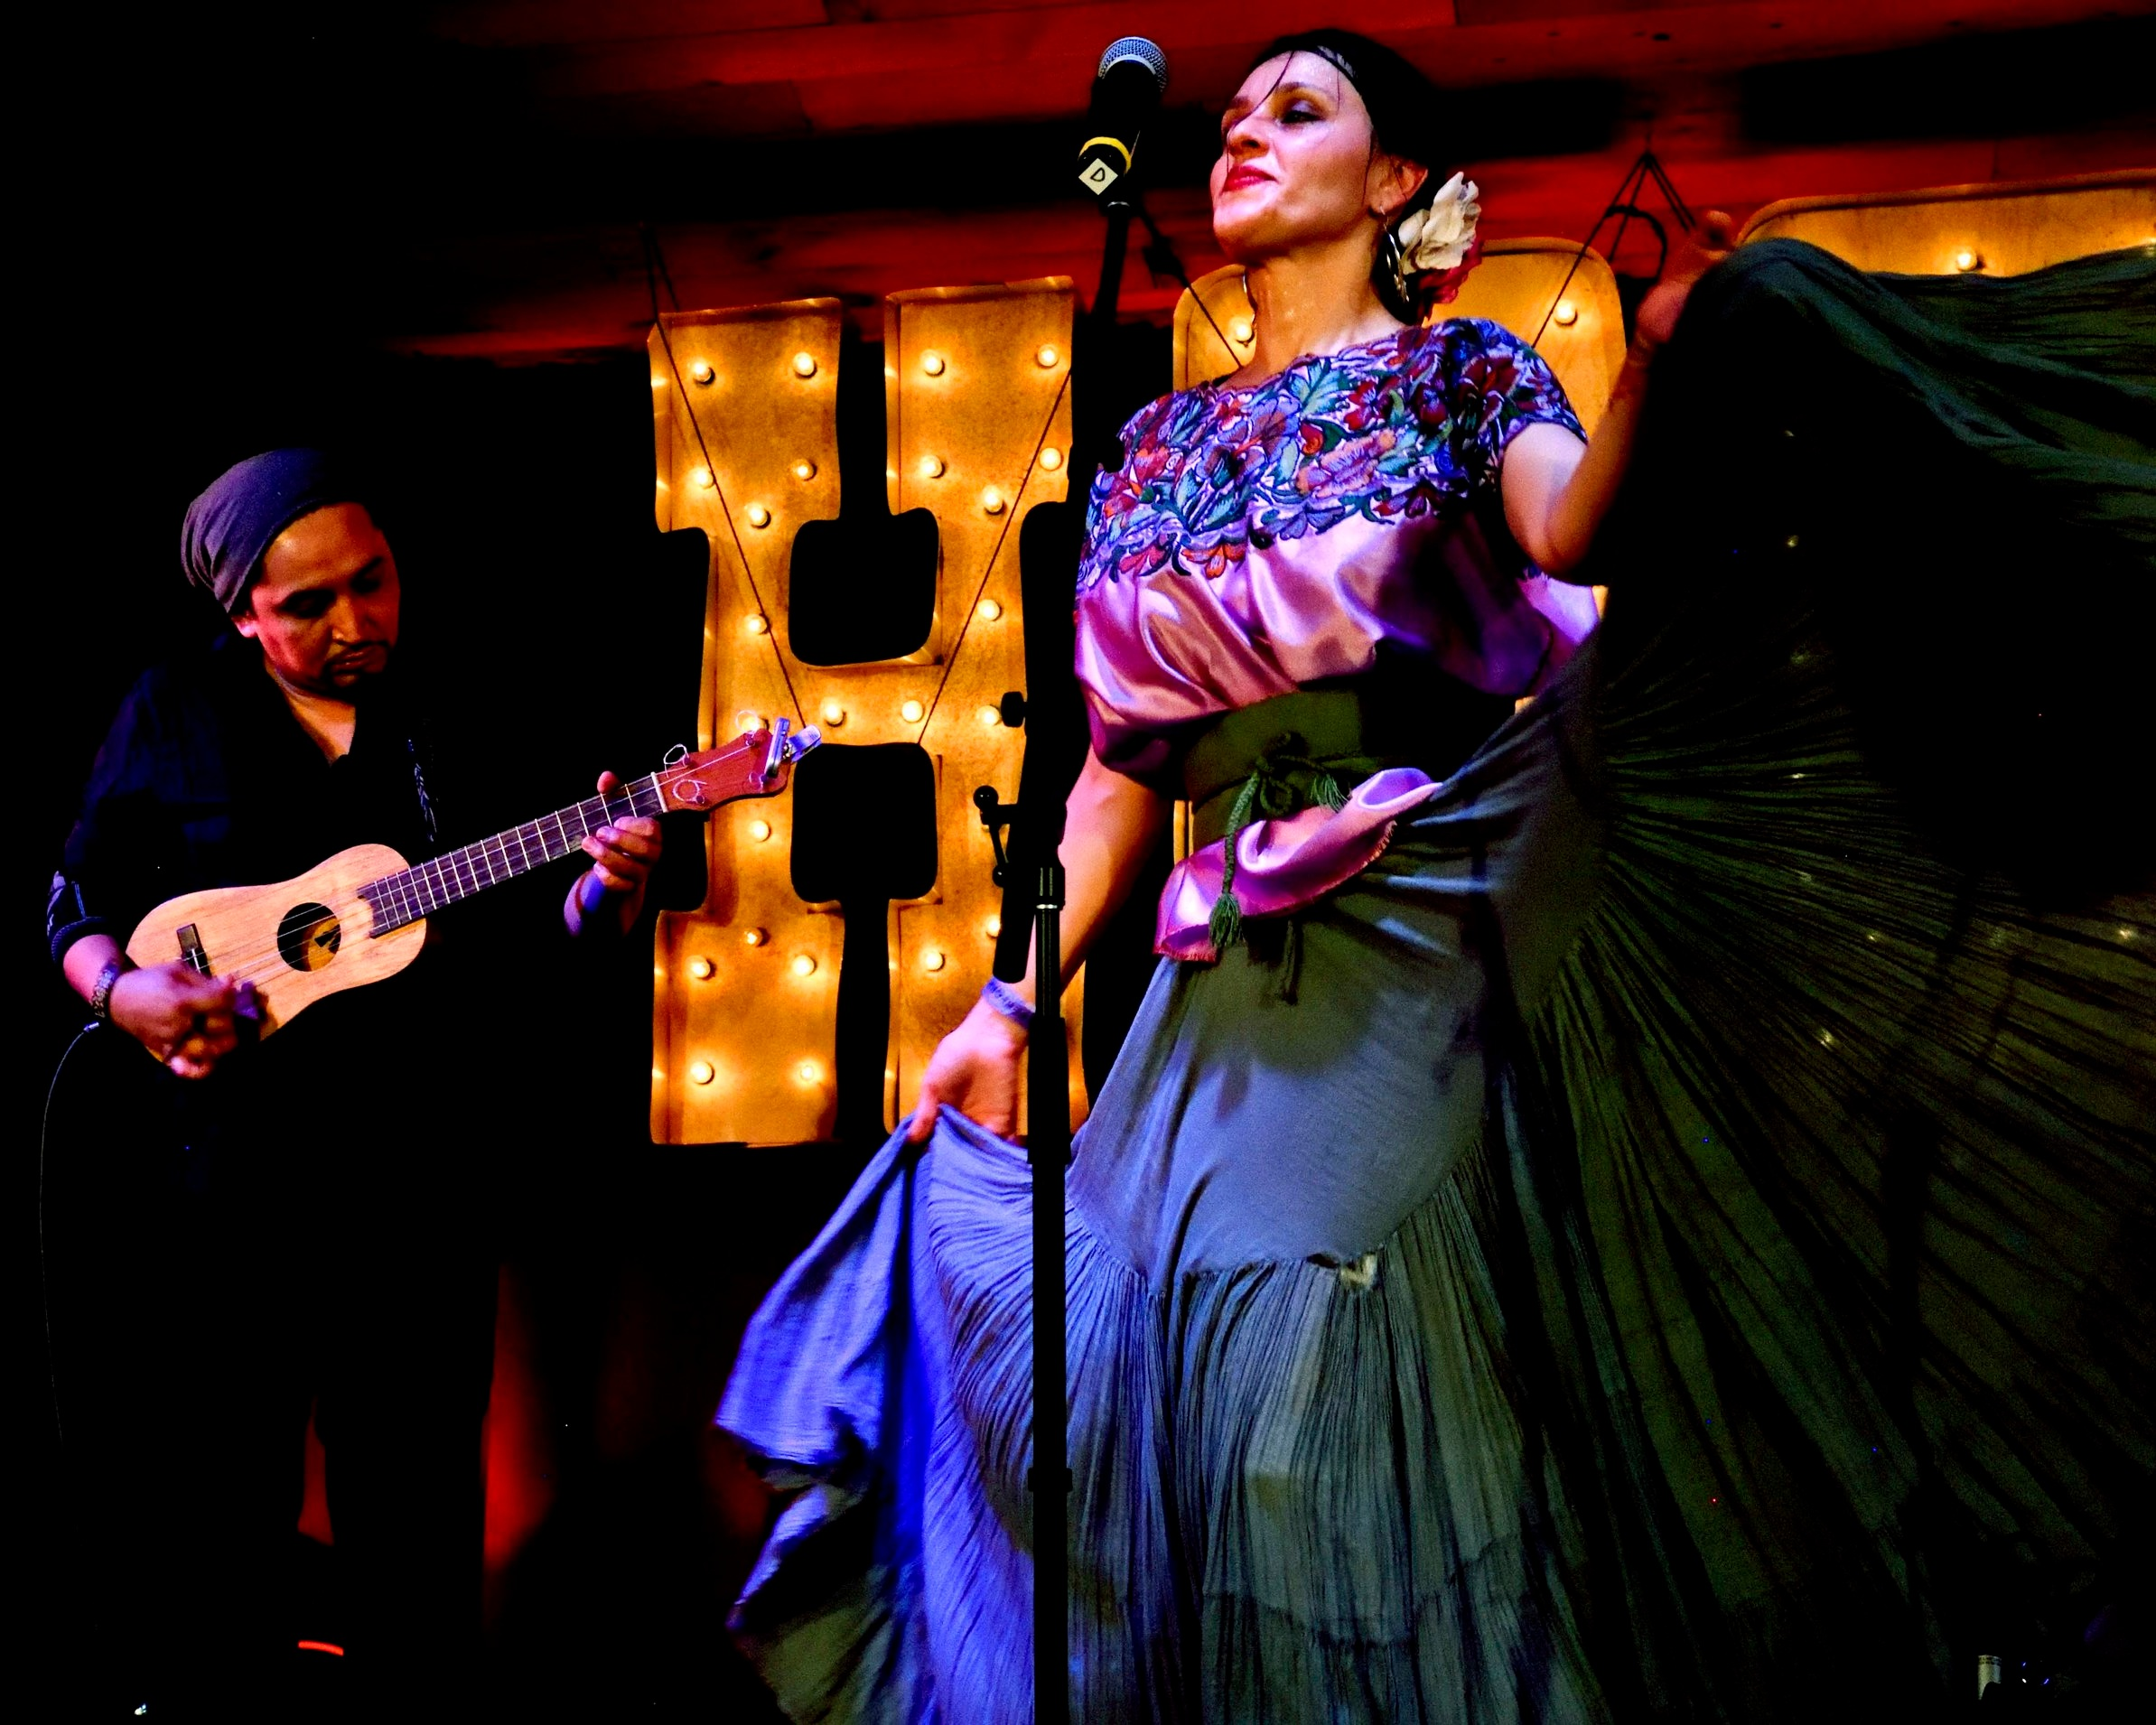 radio jarocho - Radio Jarocho plays the rowdy, upbeat, and at times melancholic music of the countryside of Veracruz, Mexico, having mixed it with the sounds of New York's urban life for over ten years. They deliver performances that are passionate, energetic, and true to the roots of the genre. They raised the roof at the 2017 Winter Hoot and we're thrilled they're coming back!